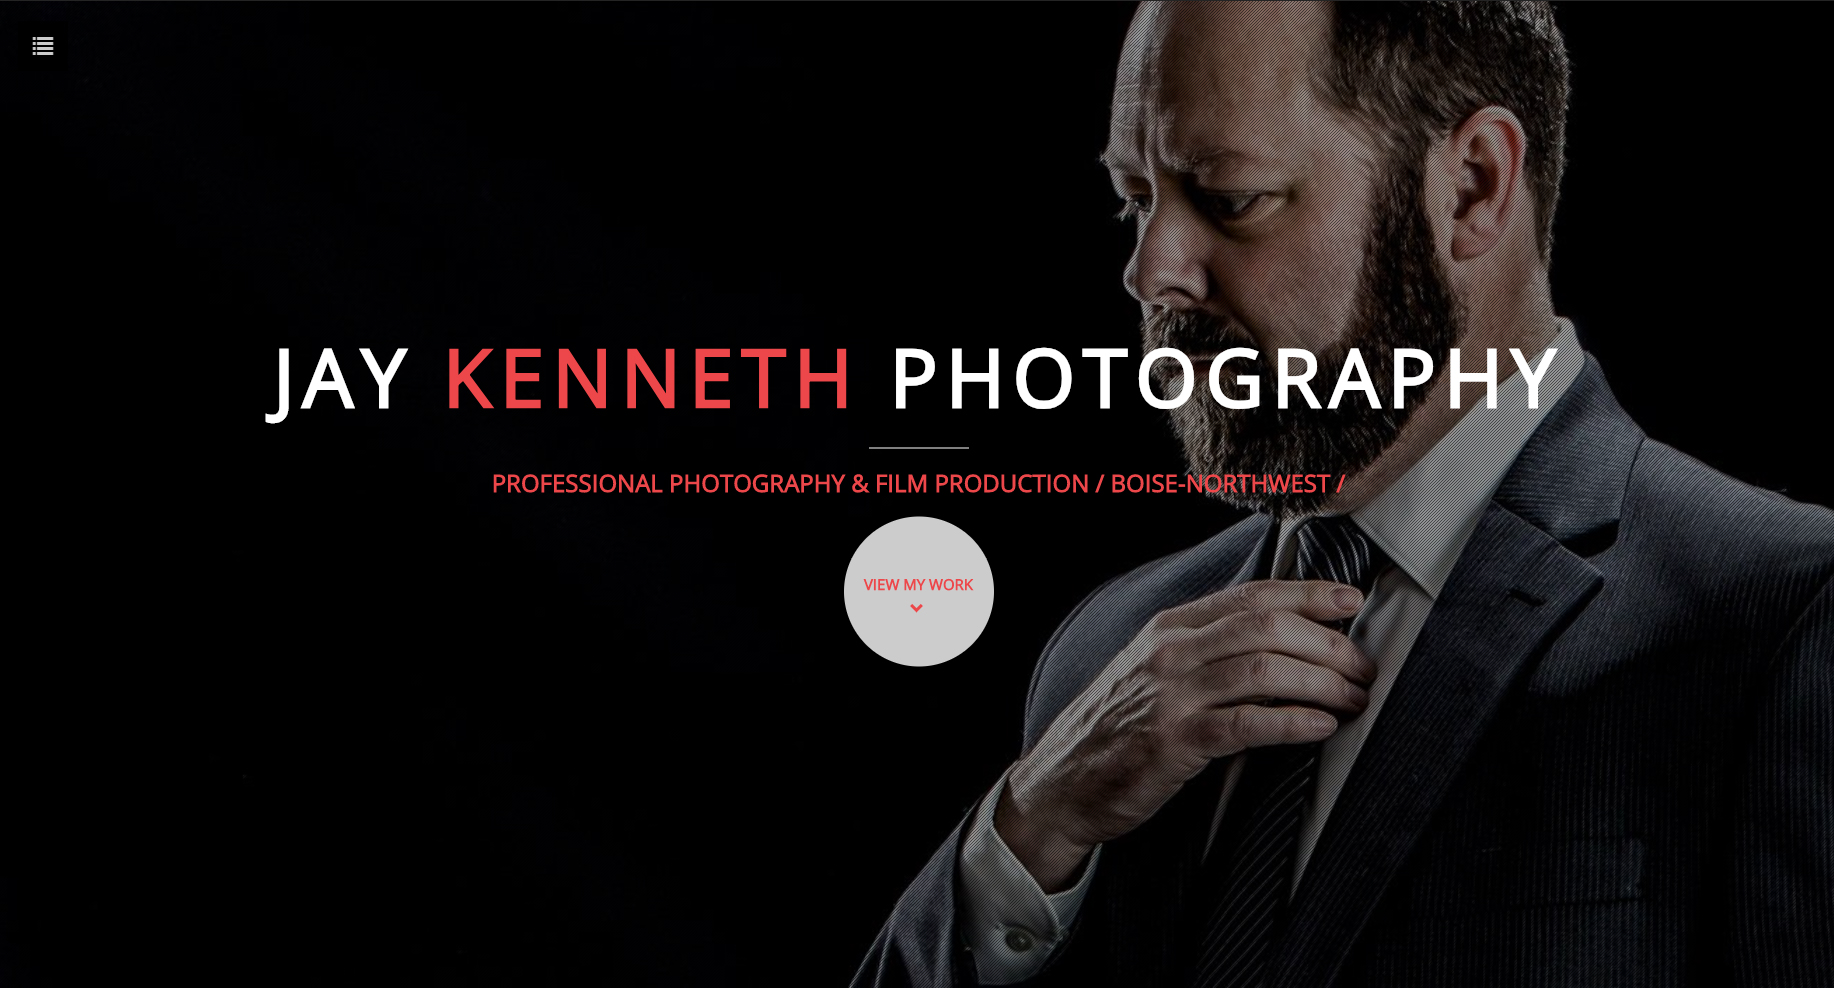 Jay Kenneth Photography